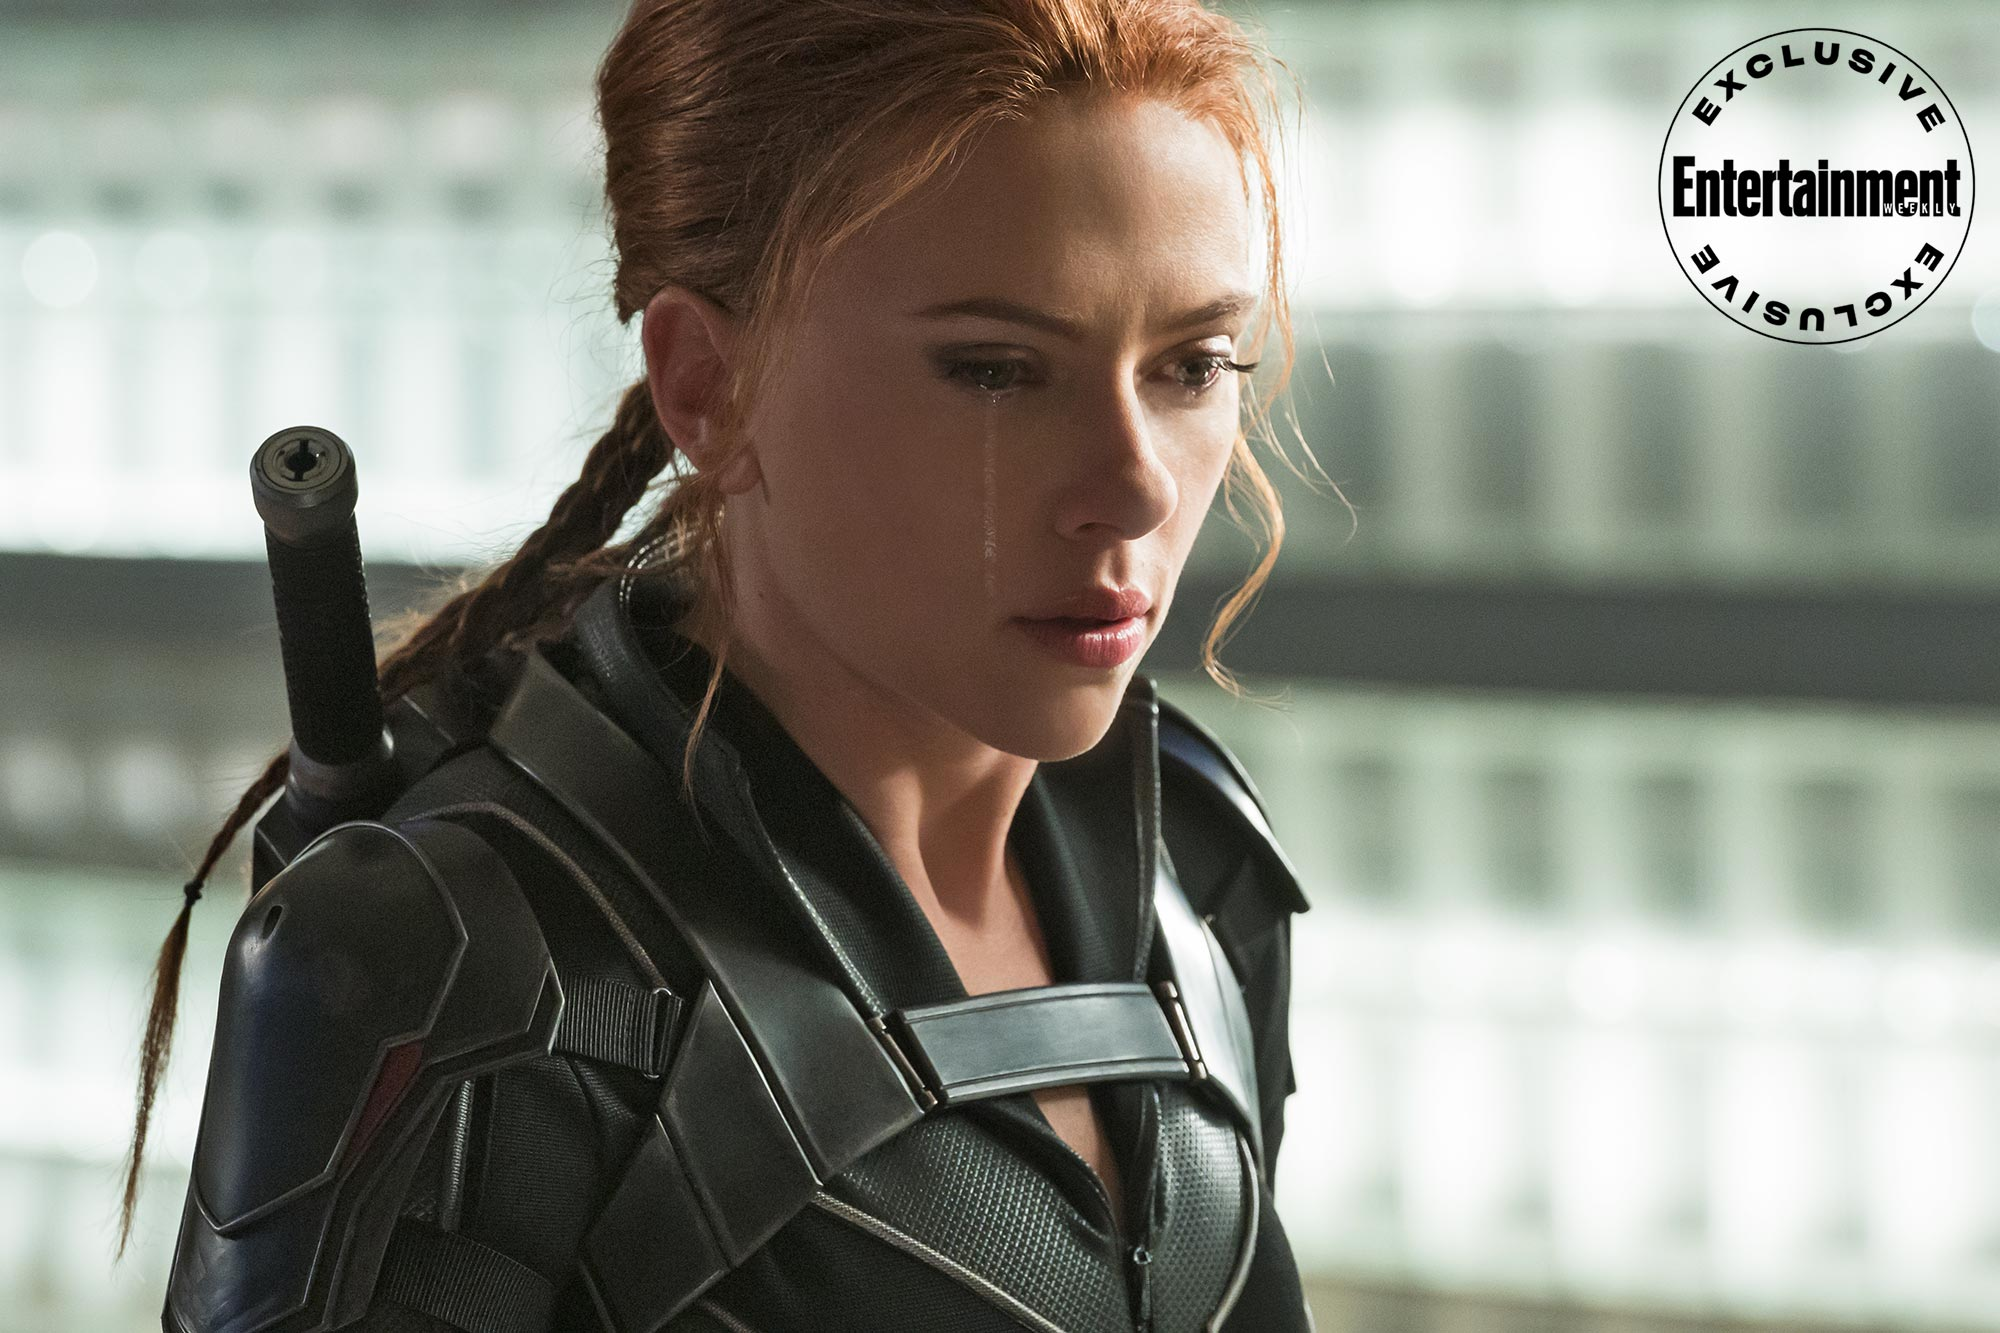 Black Widow: Scarlett Johansson goes solo in EW's exclusive images | EW.com